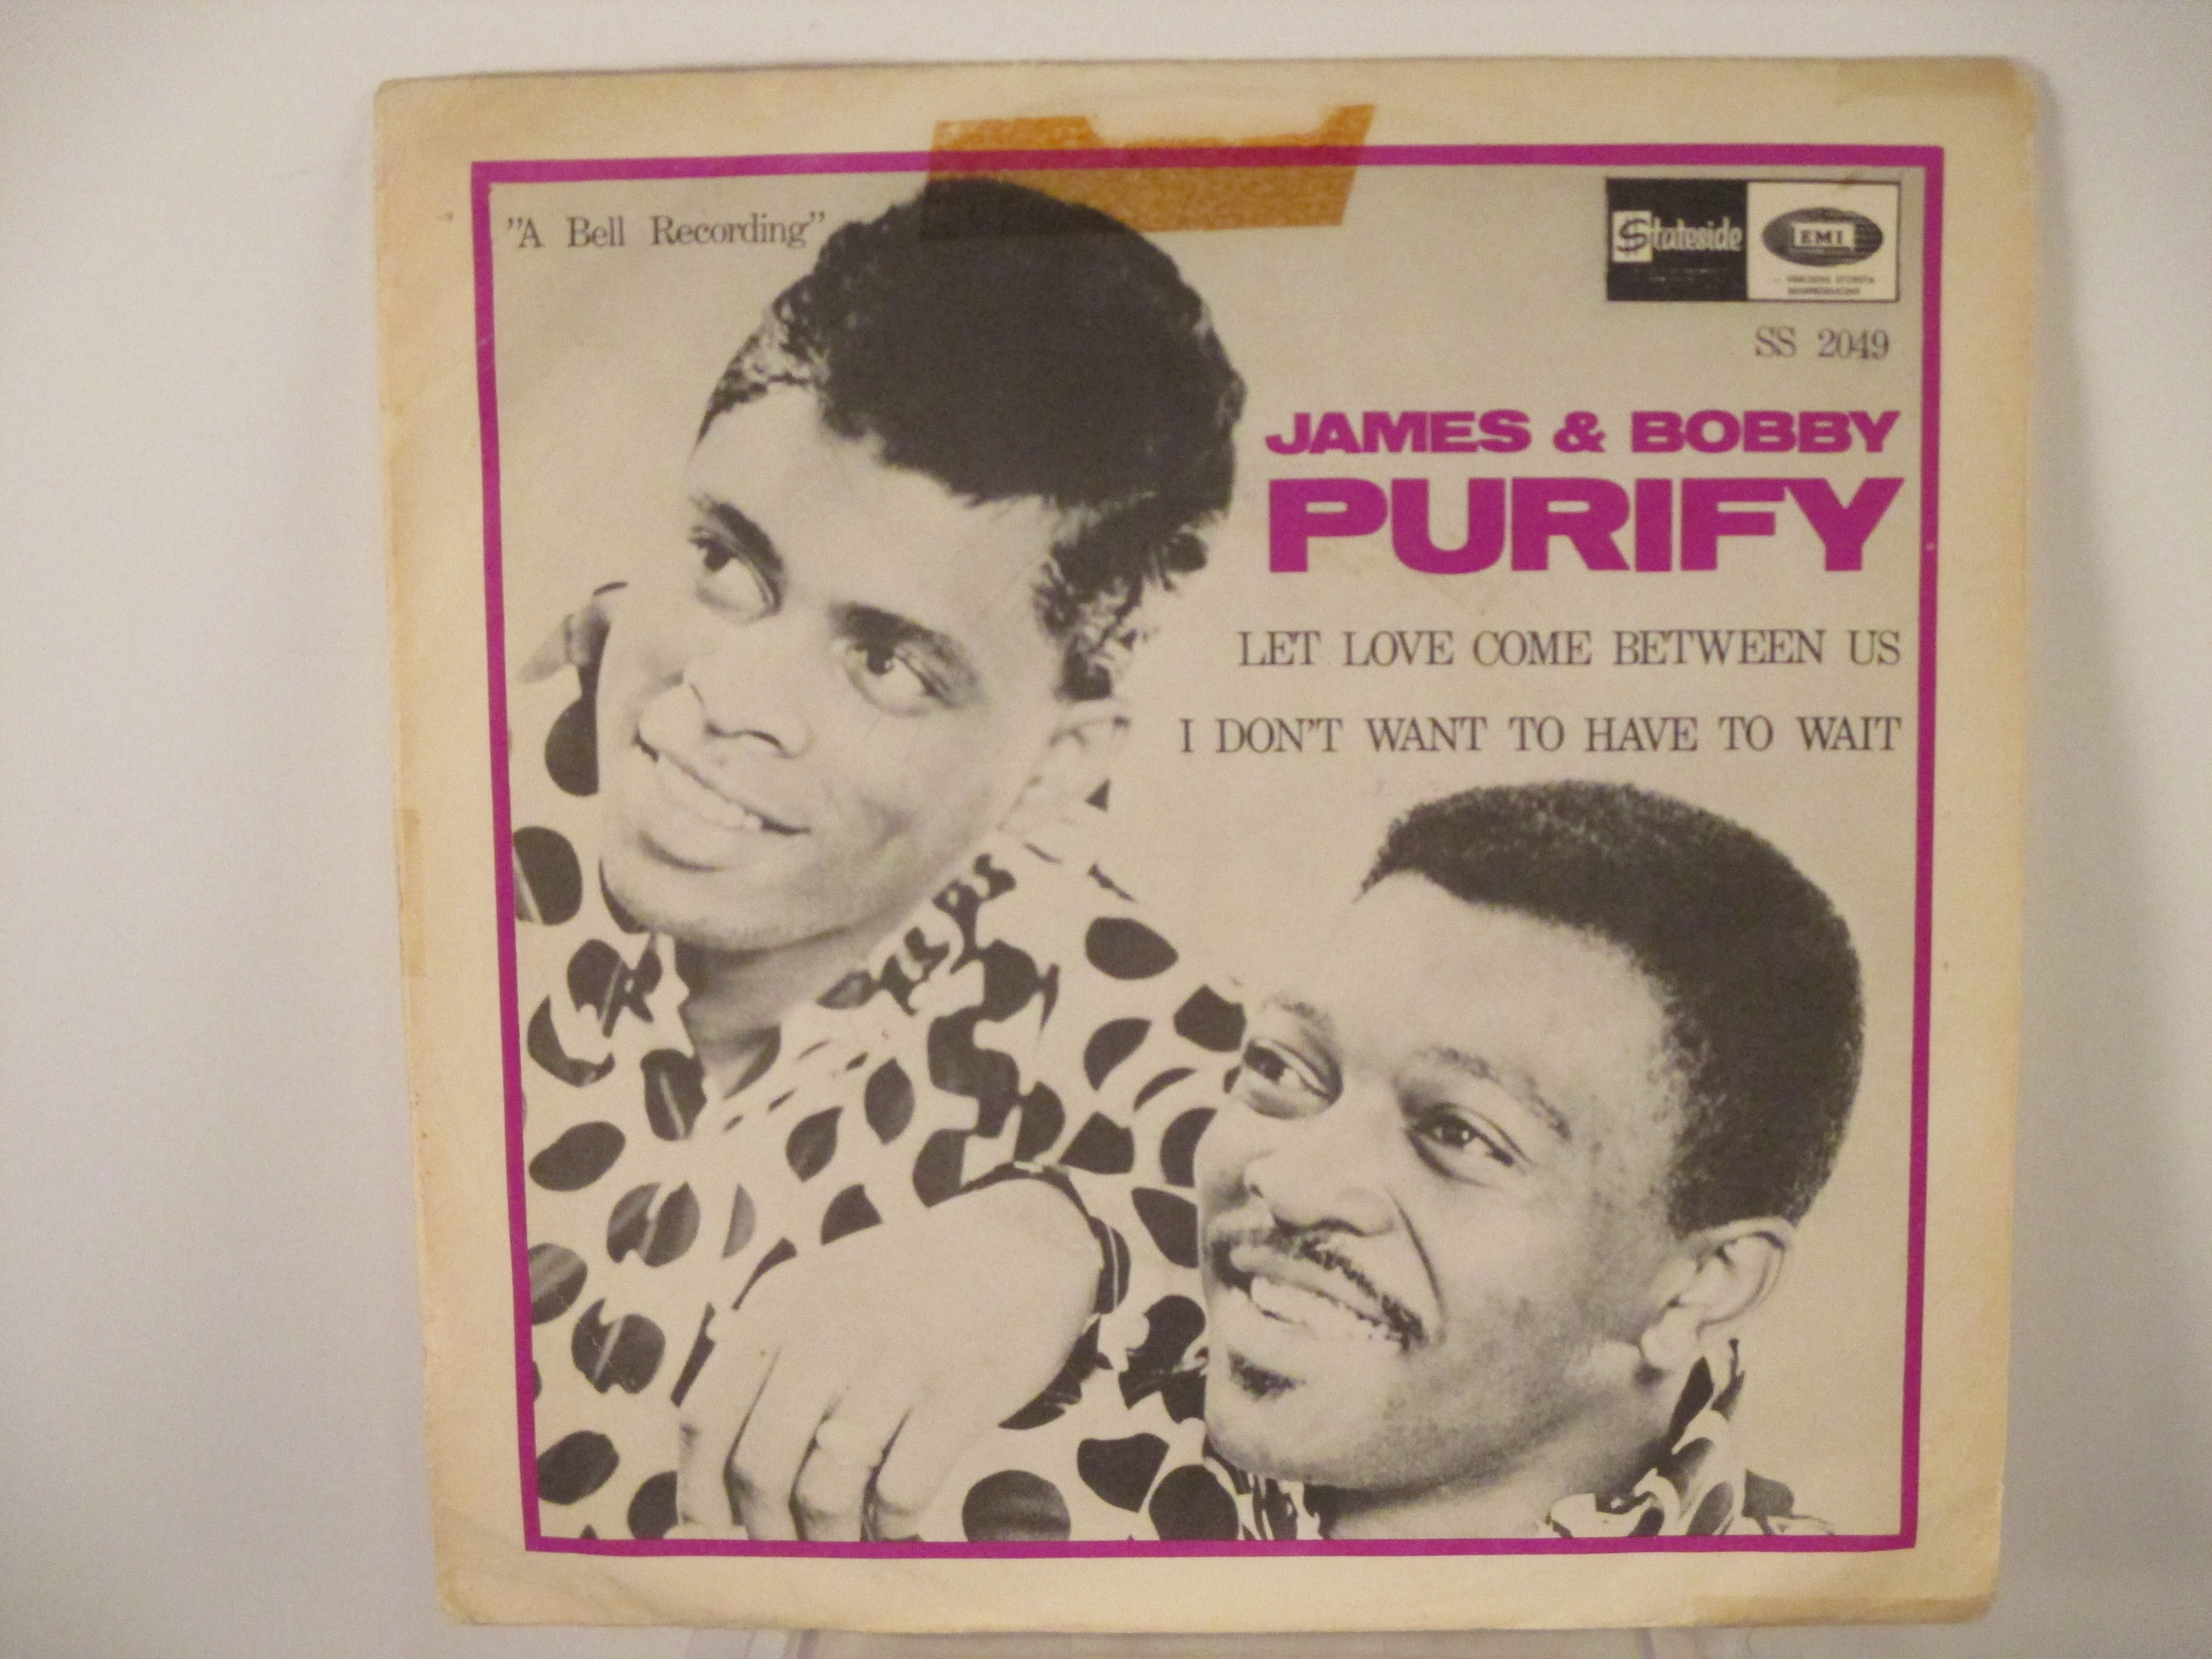 JAMES & BOBBY PURIFY : Let love come between us / I don't want to have to wait